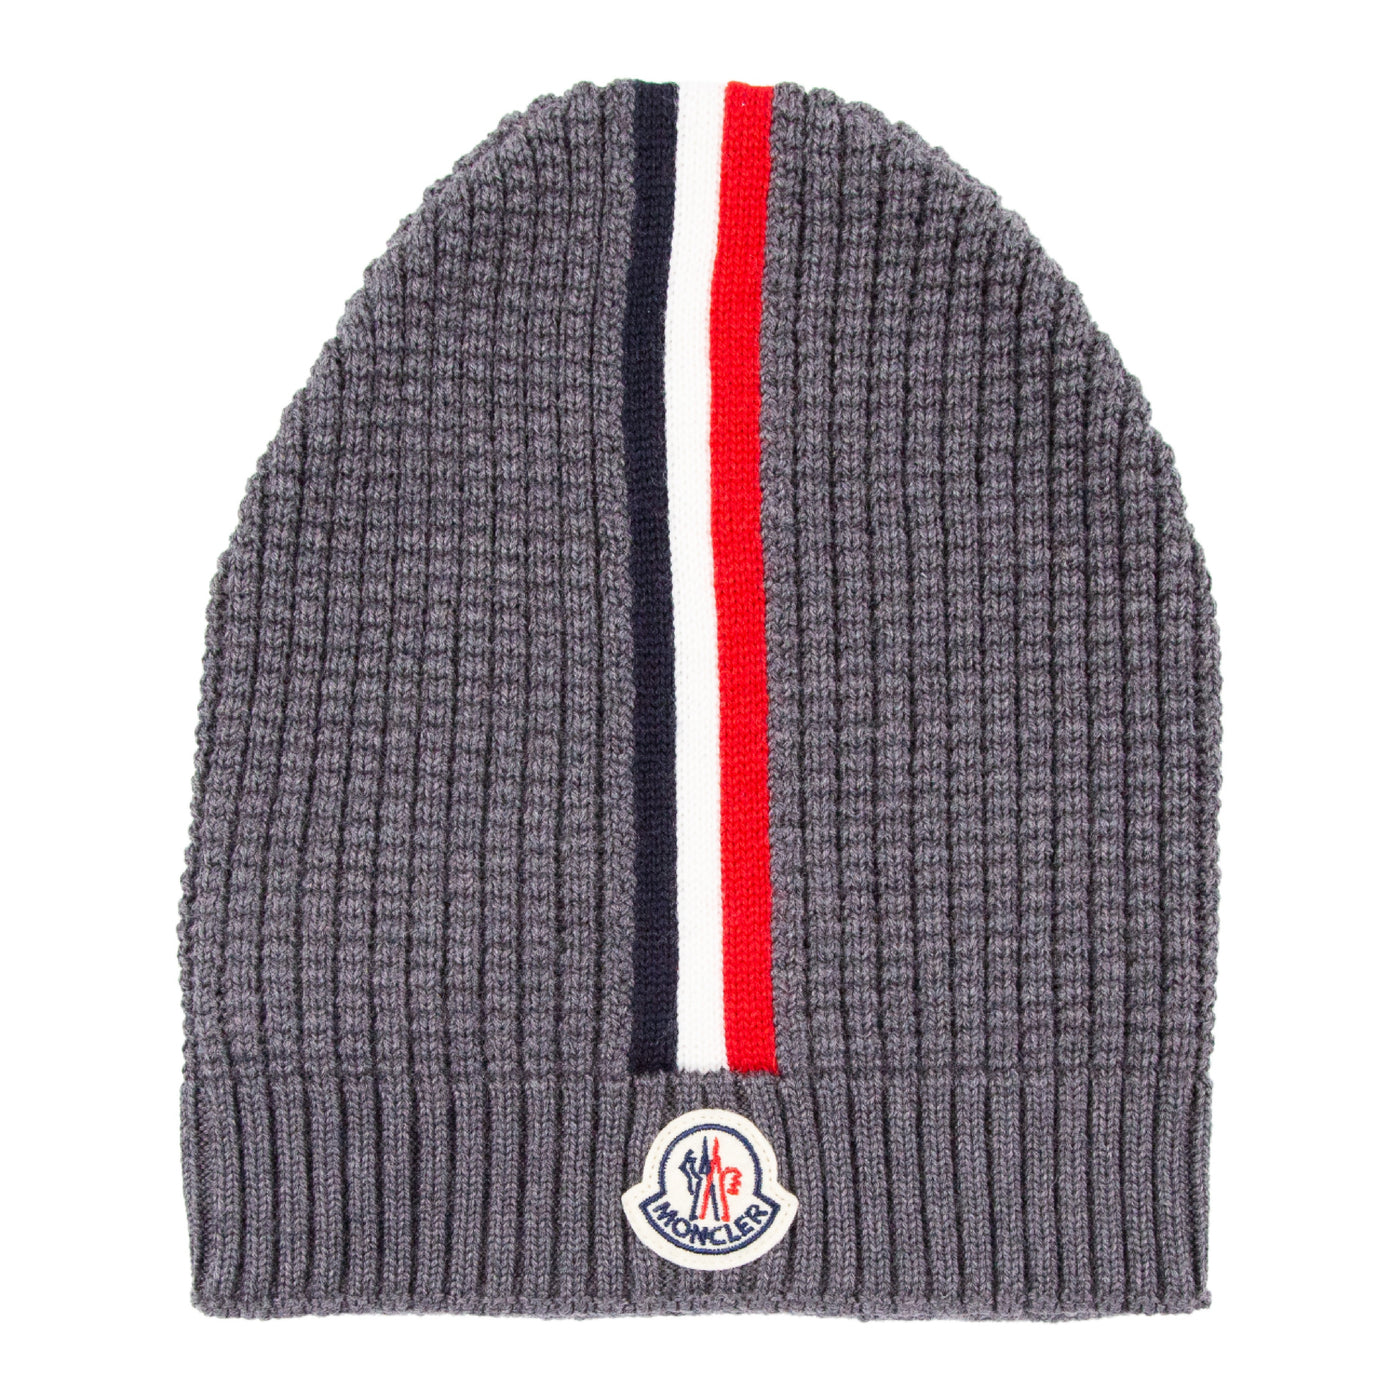 Load image into Gallery viewer, MONCLER KNIT BEANIE GREY